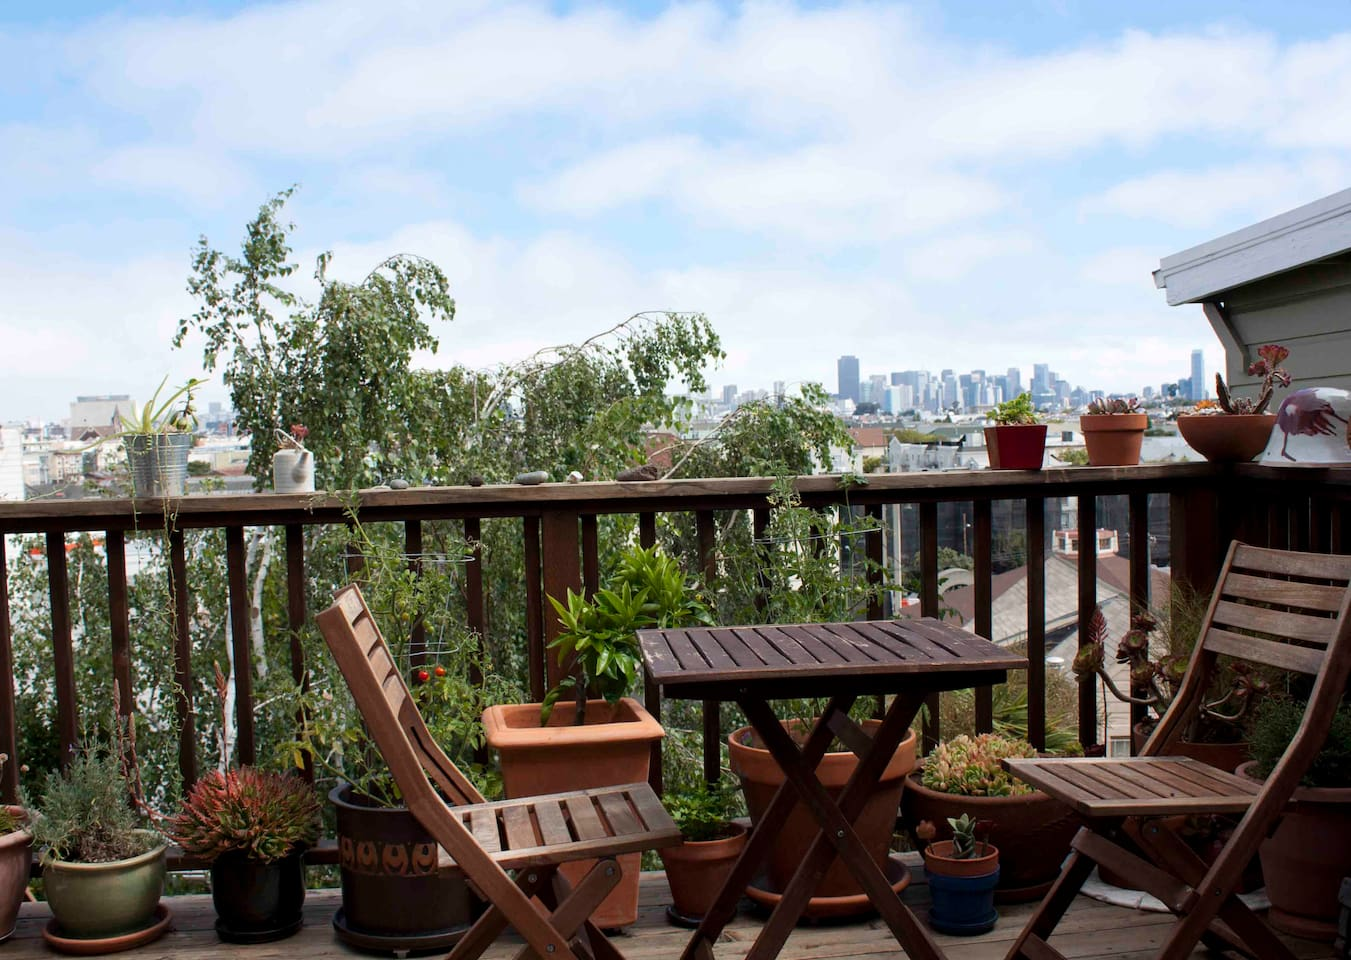 Deck with great views of downtown and Twin Peaks - great for having a coffee or grilling on a gas grill